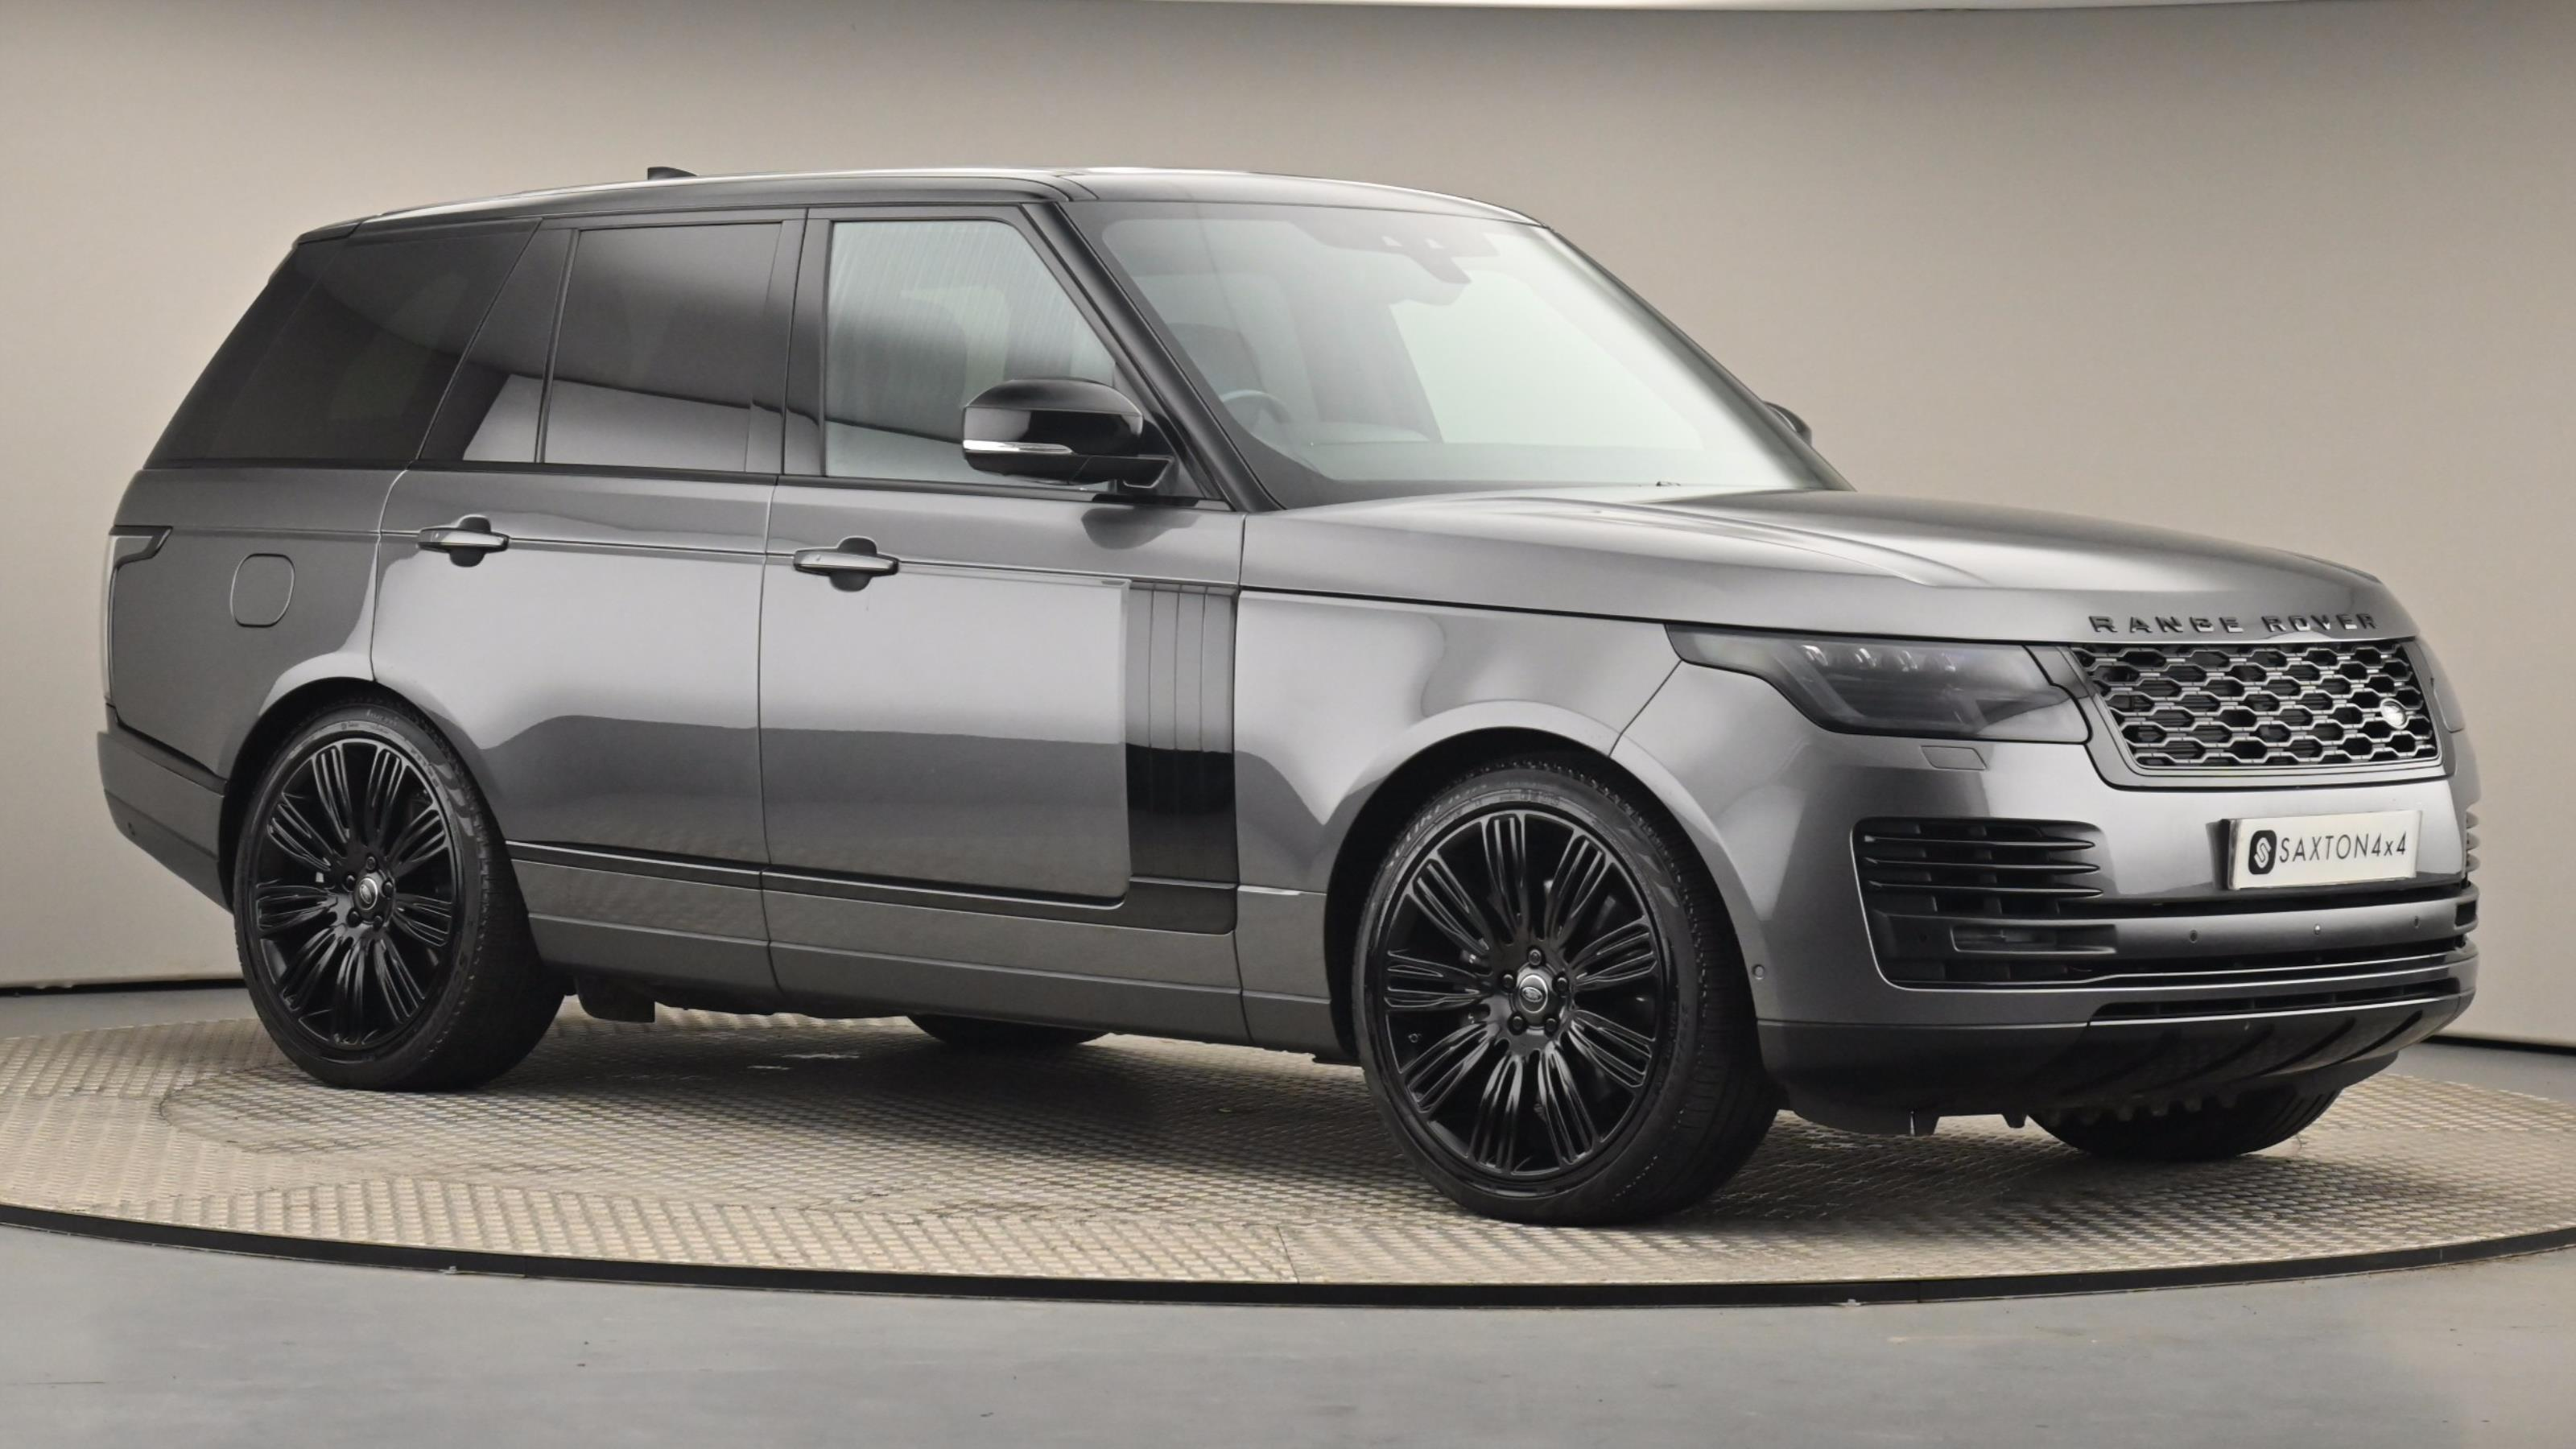 Used 2018 Land Rover RANGE ROVER 4.4 SDV8 Autobiography 4dr Auto GREY at Saxton4x4